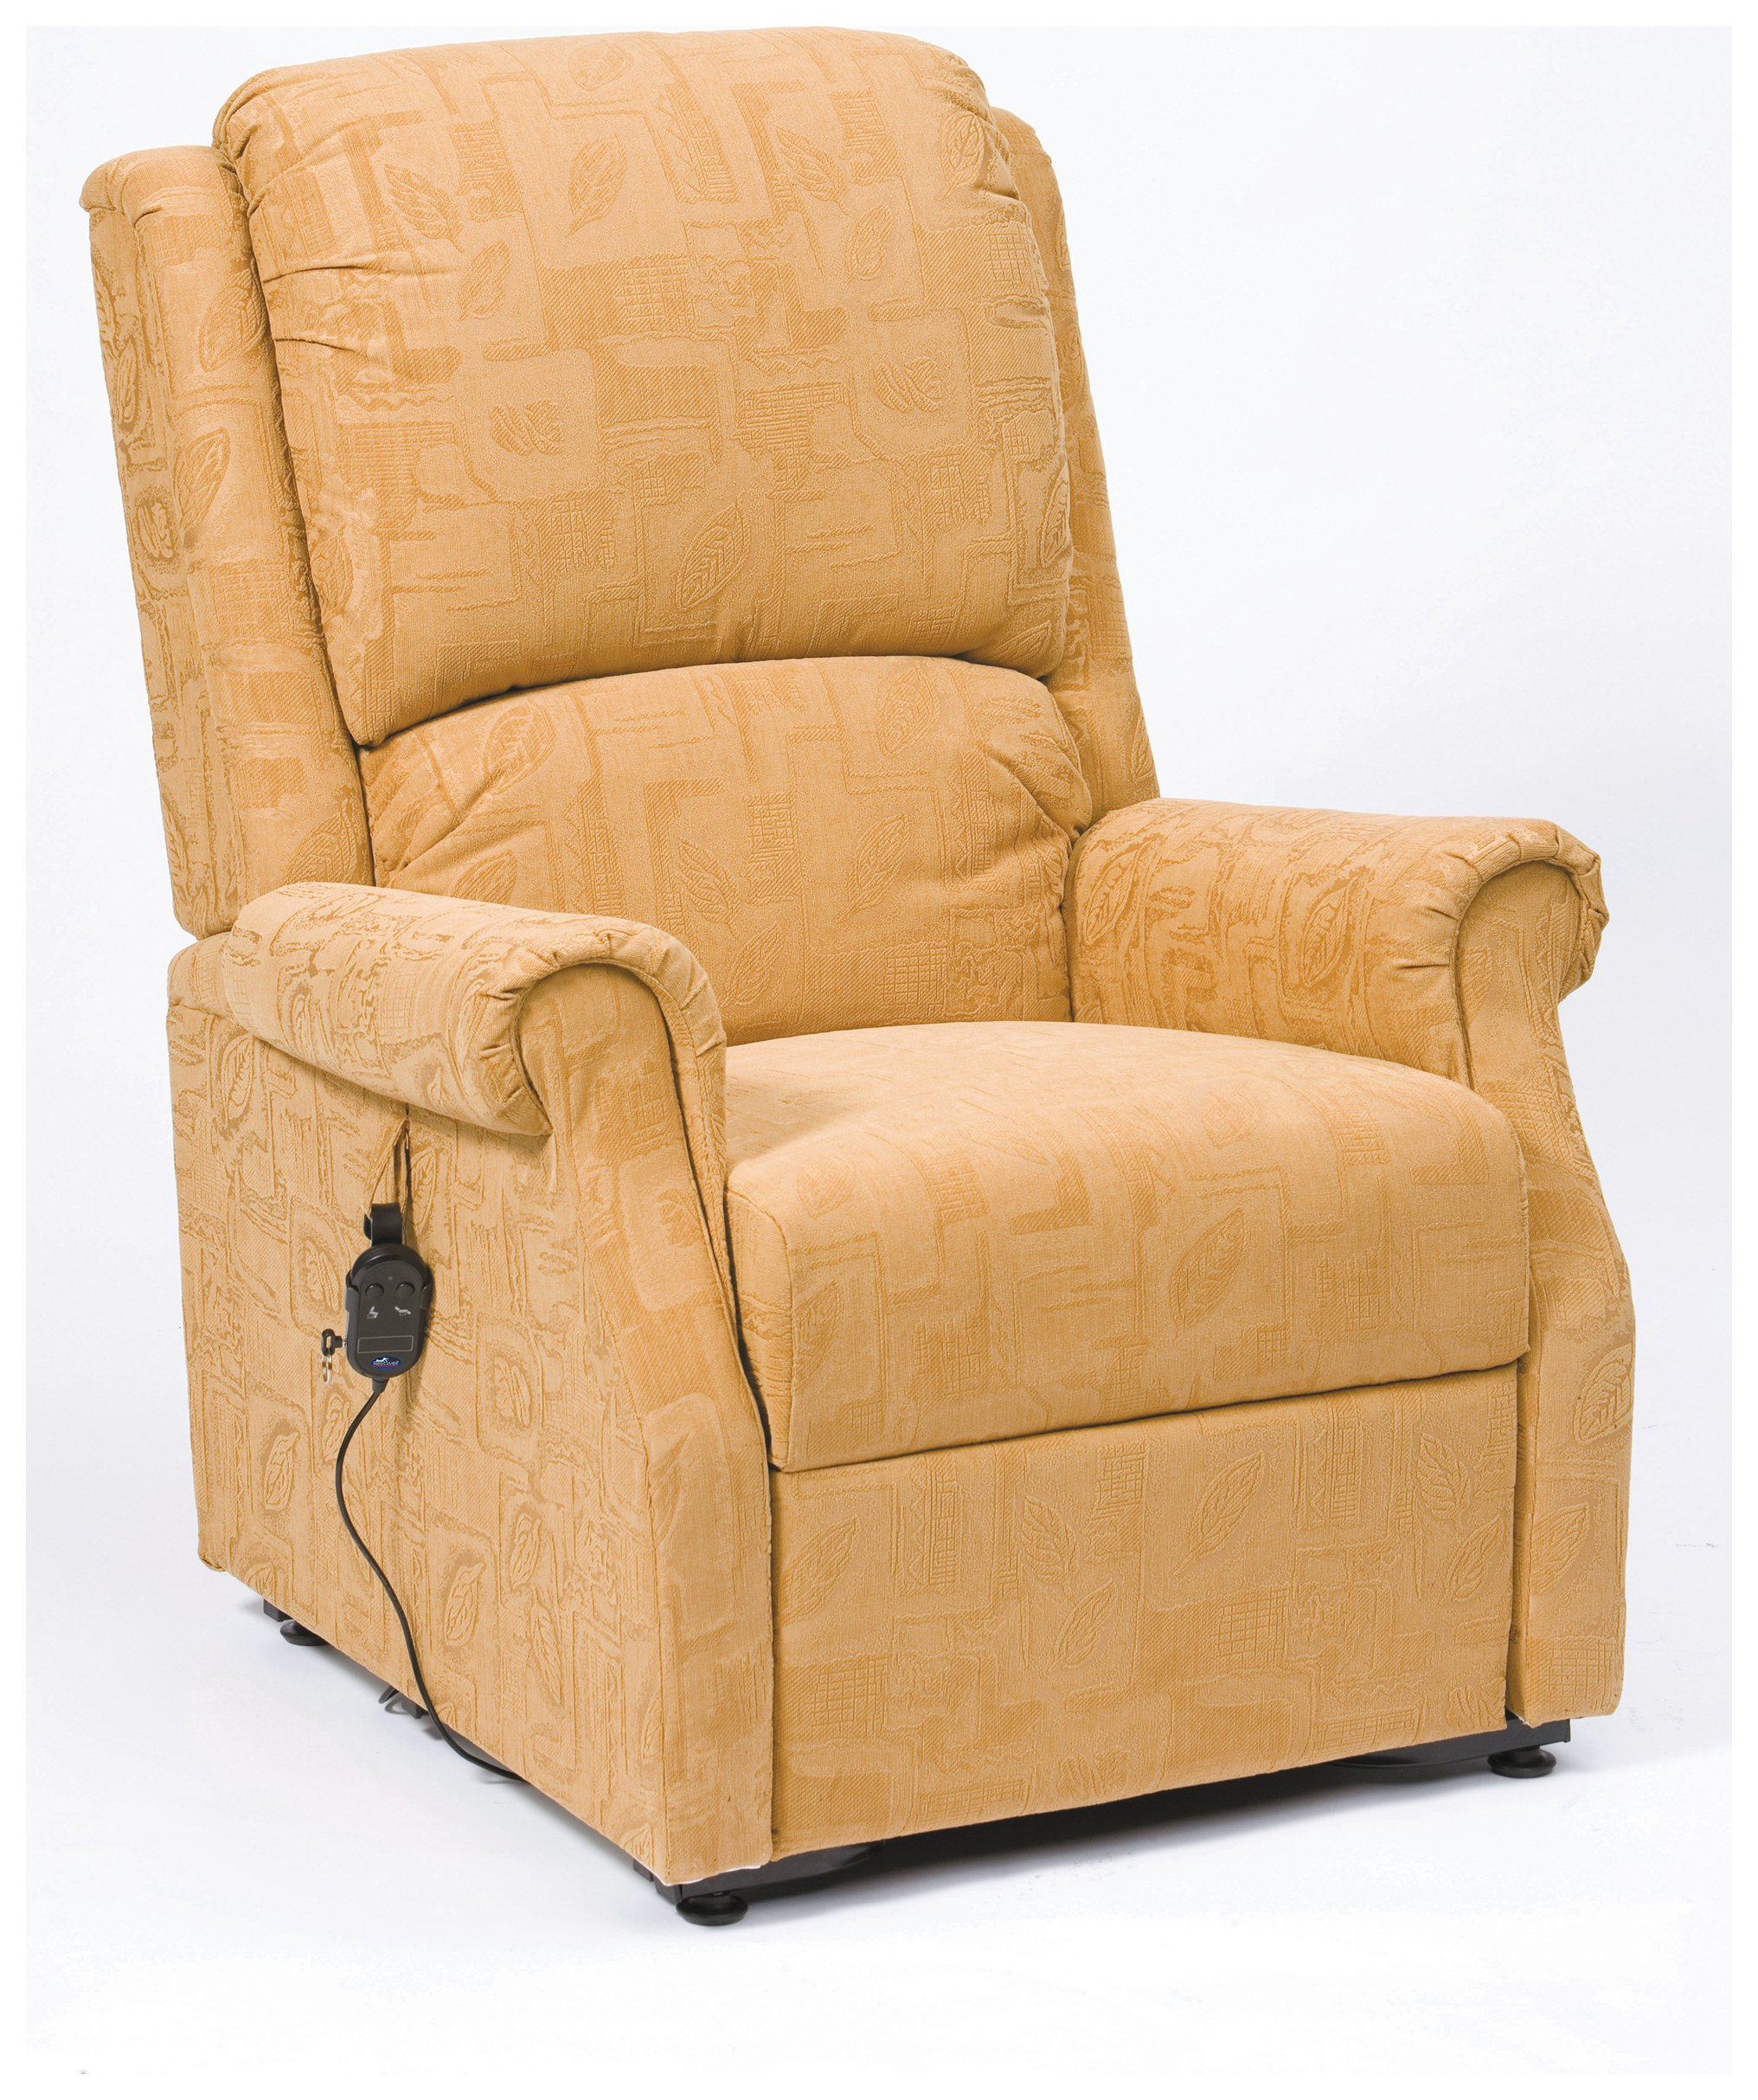 Image of Chicago Riser Recliner Chair with Single Motor - Gold.